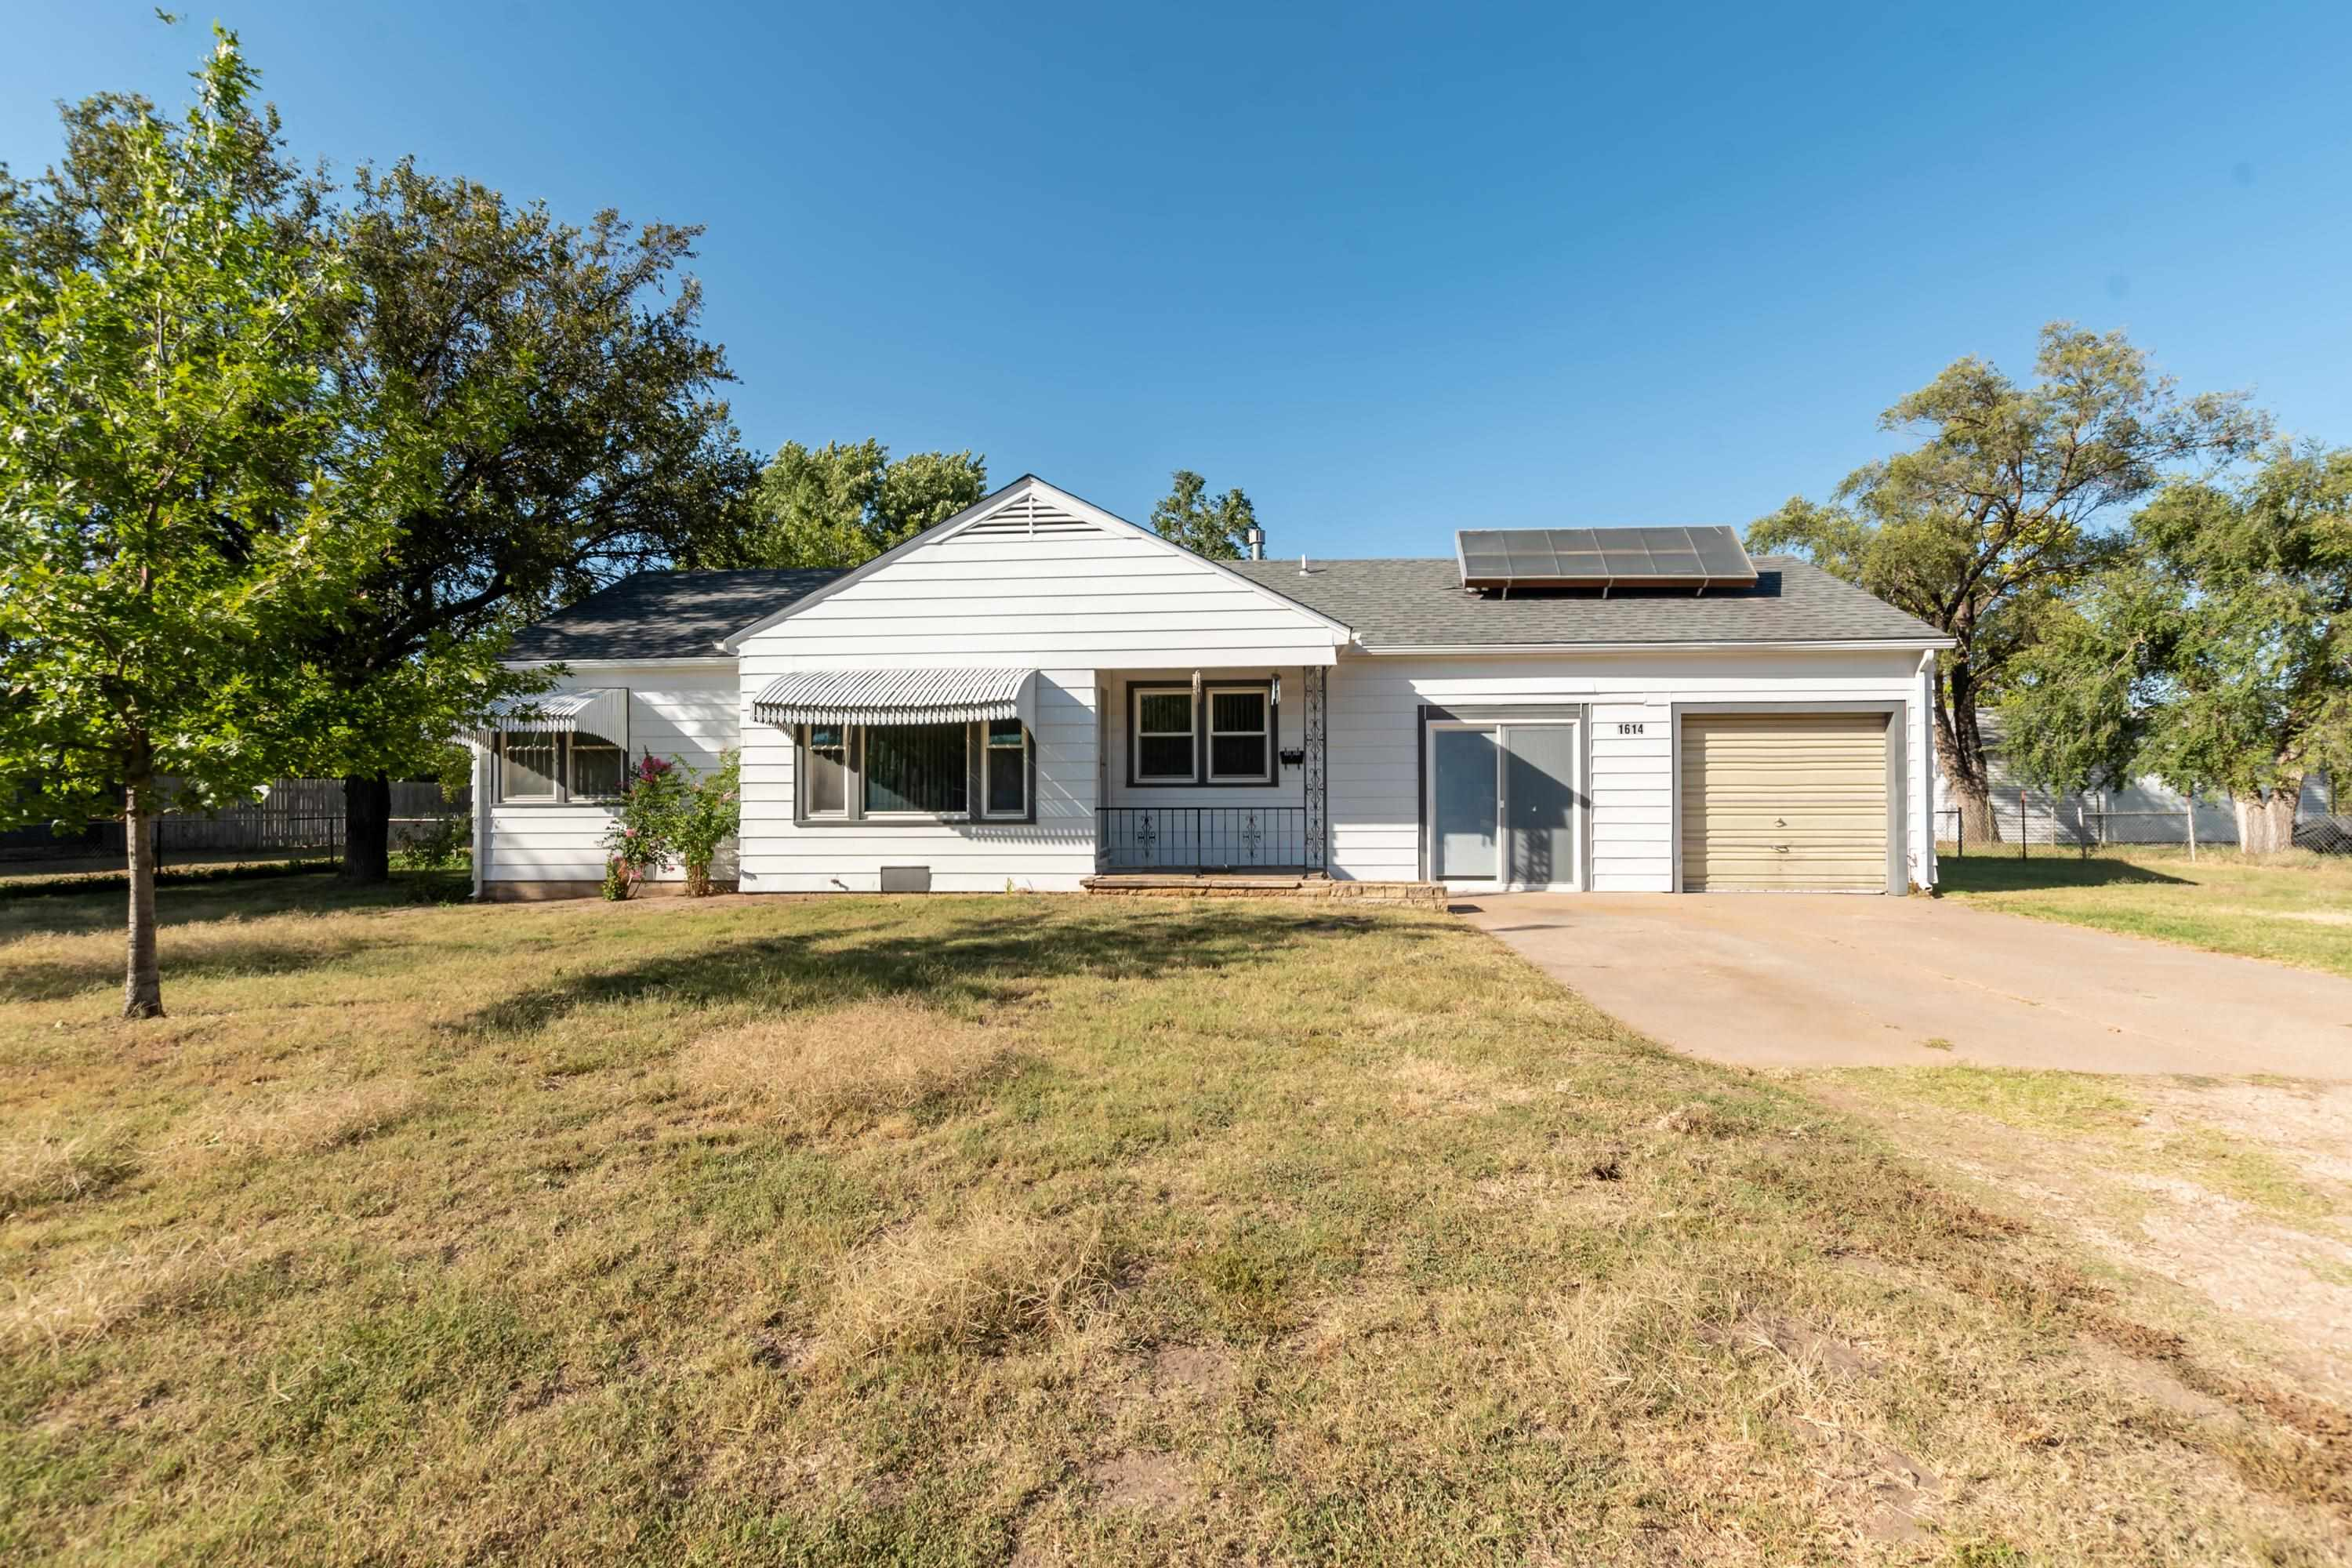 Well cared for home on almost half an acre in south Wichita! This spacious home with a very function